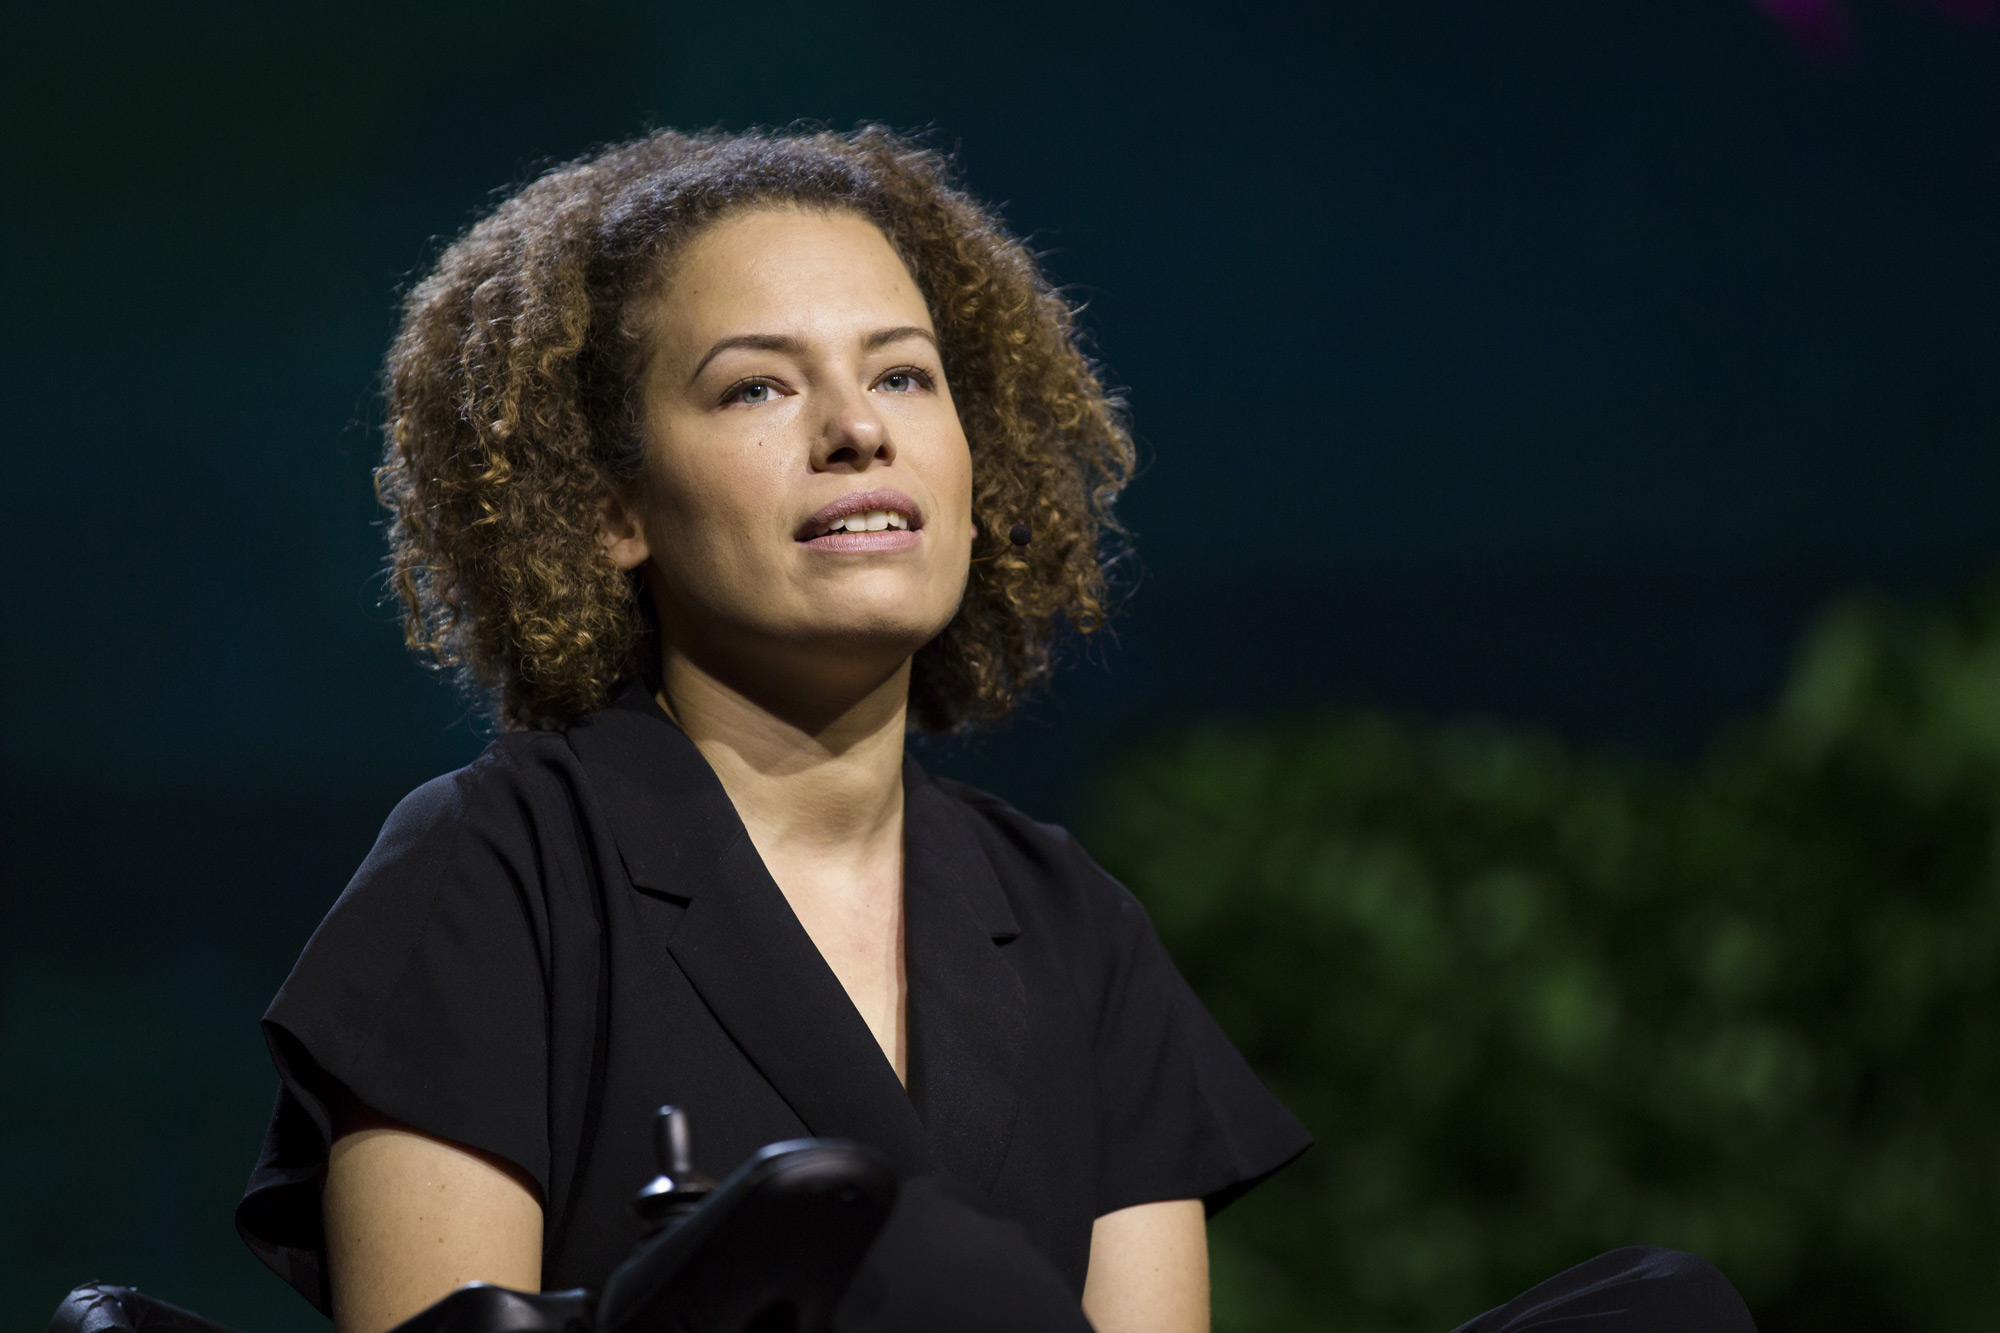 TED Fellow Jen Brea was diagnosed with ME ... and told that her symptoms were caused by something all in her head. She's fighting back. Photo by Ryan Lash/TED.